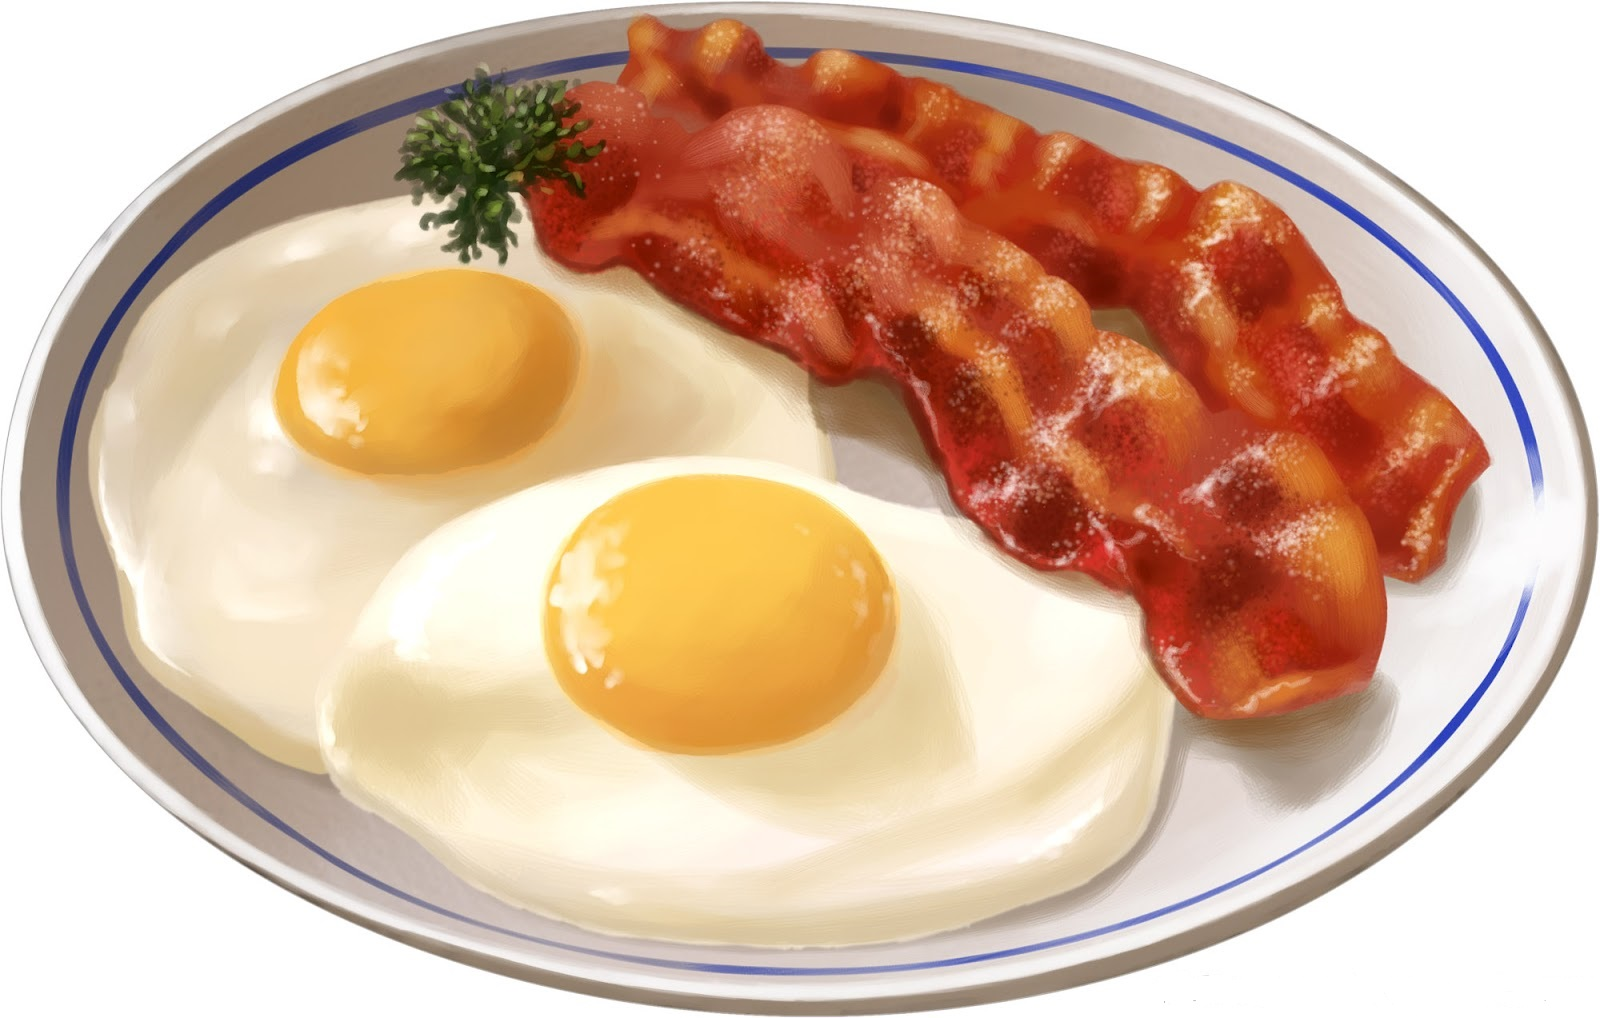 bacon and eggs why your breakfast is bad for you blog fried egg clip art black and white fried egg clipart black and white